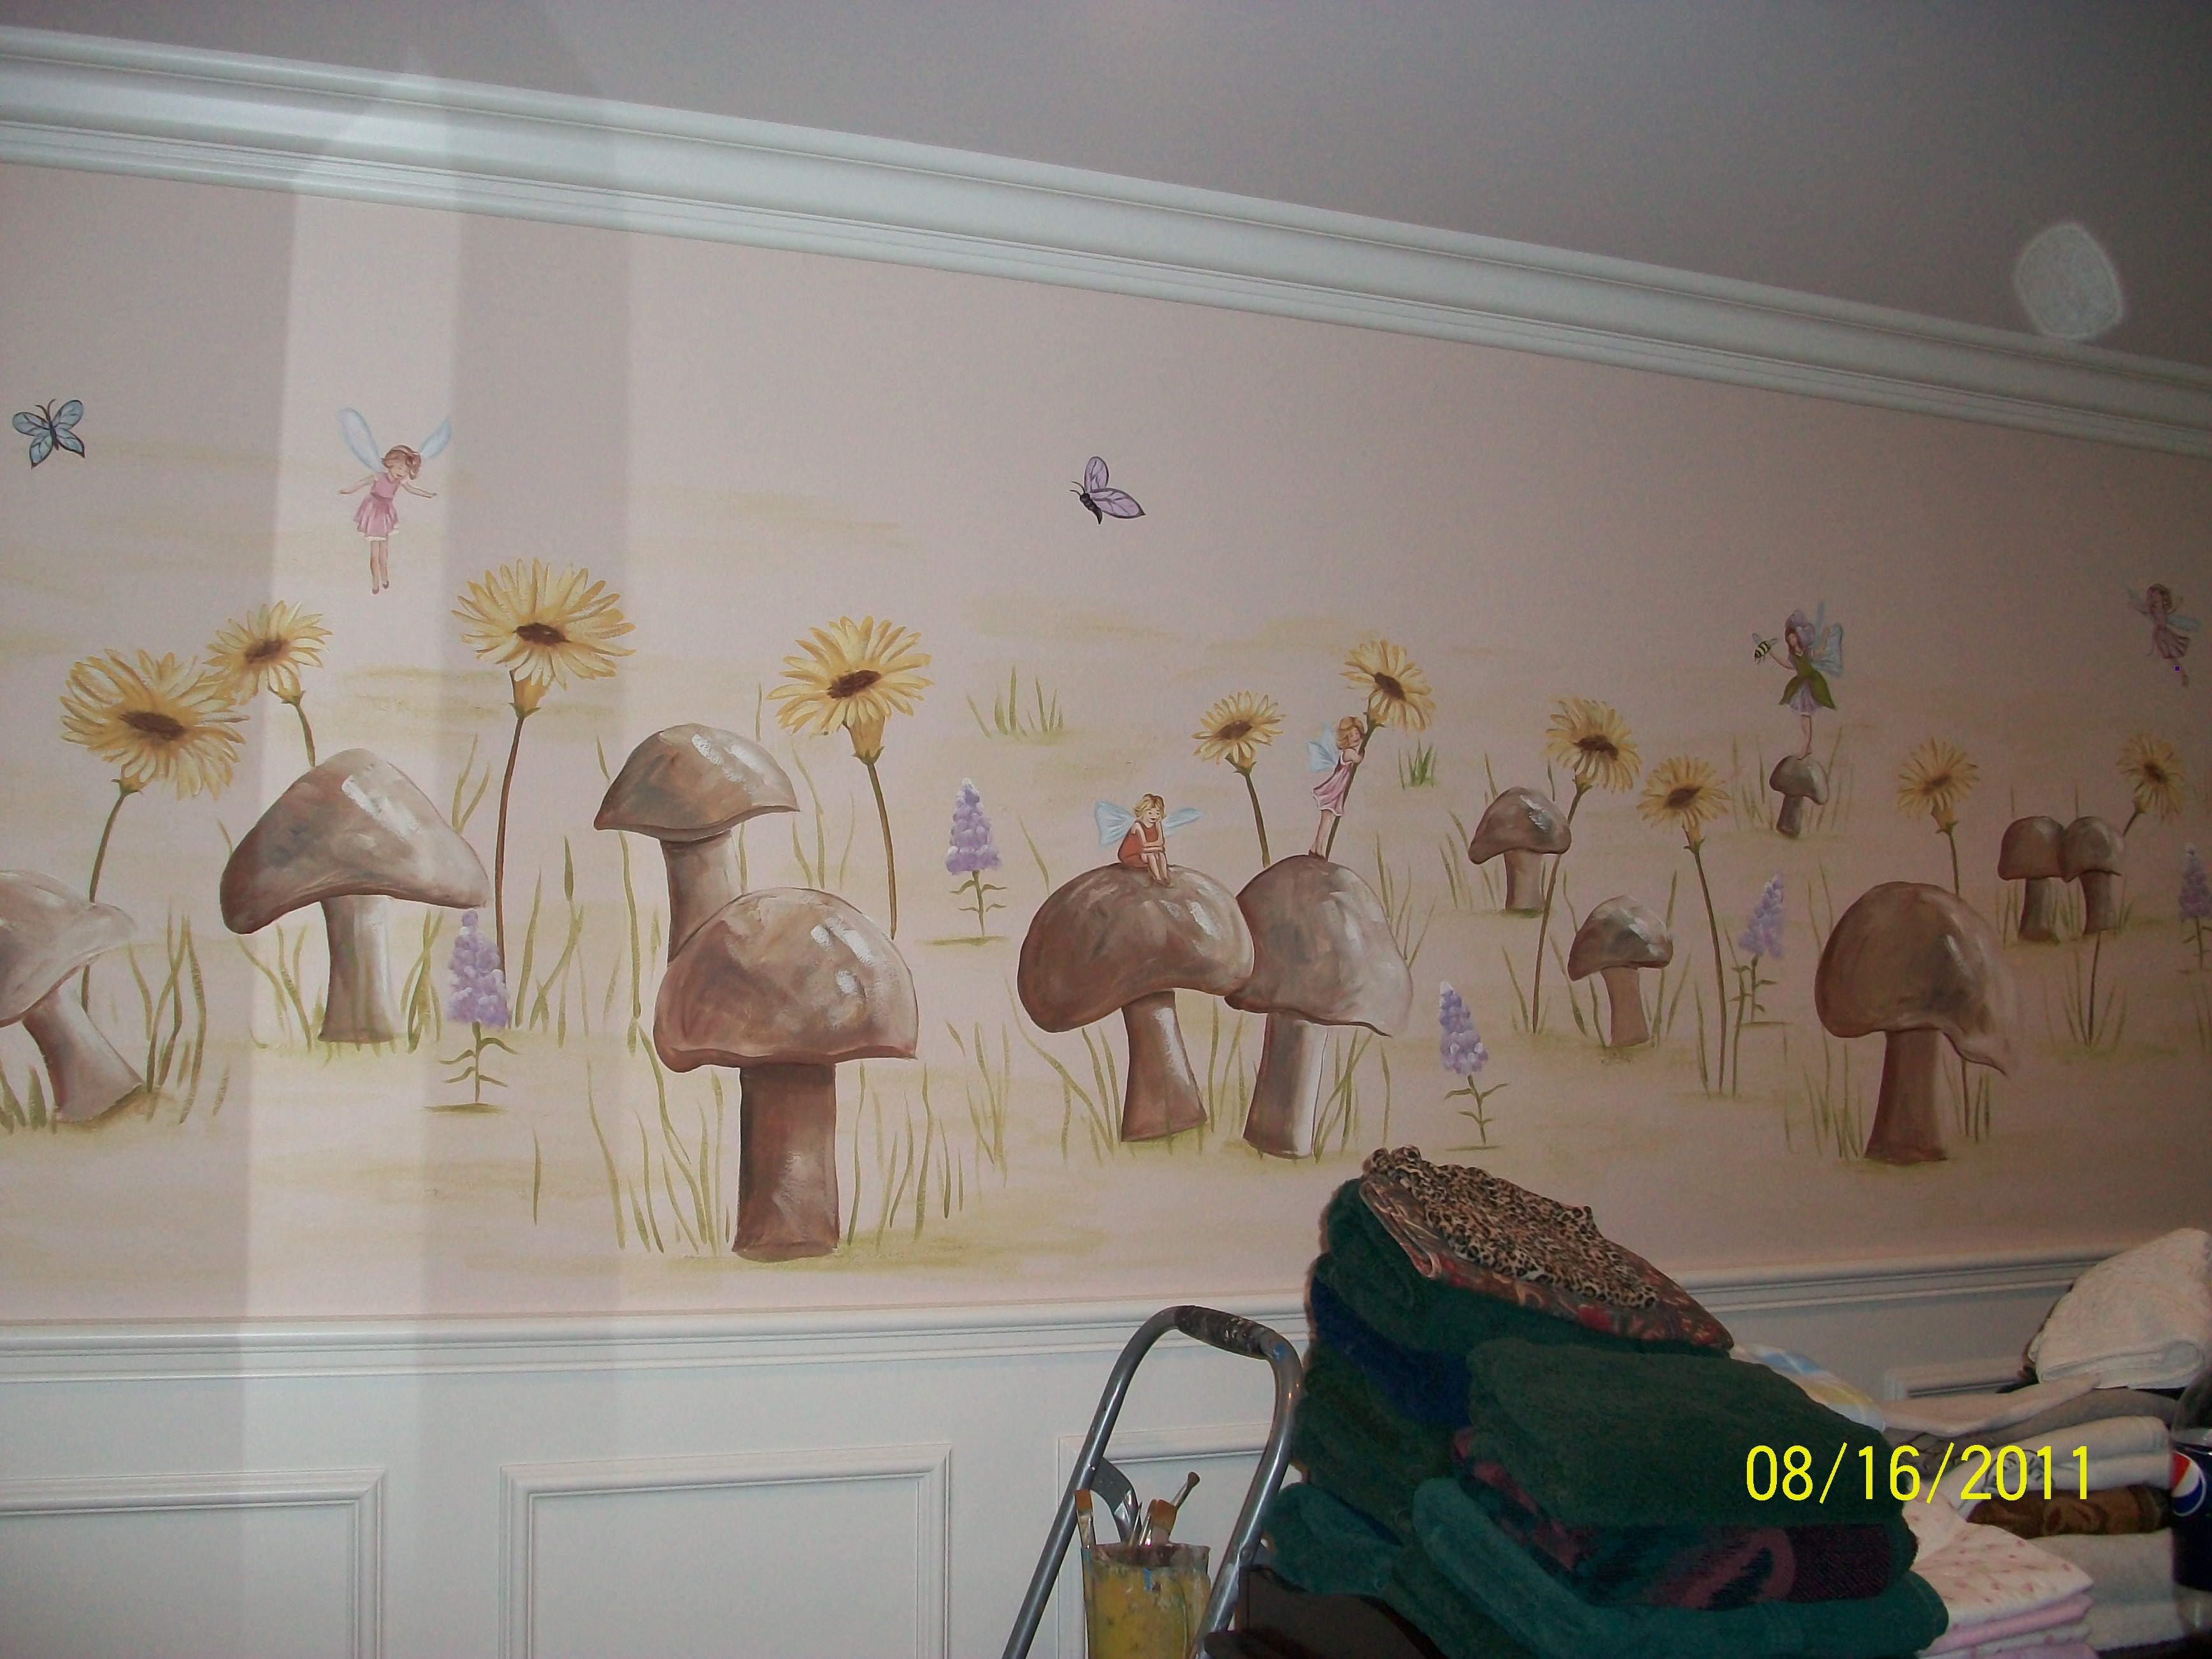 Mushroom field with fairies